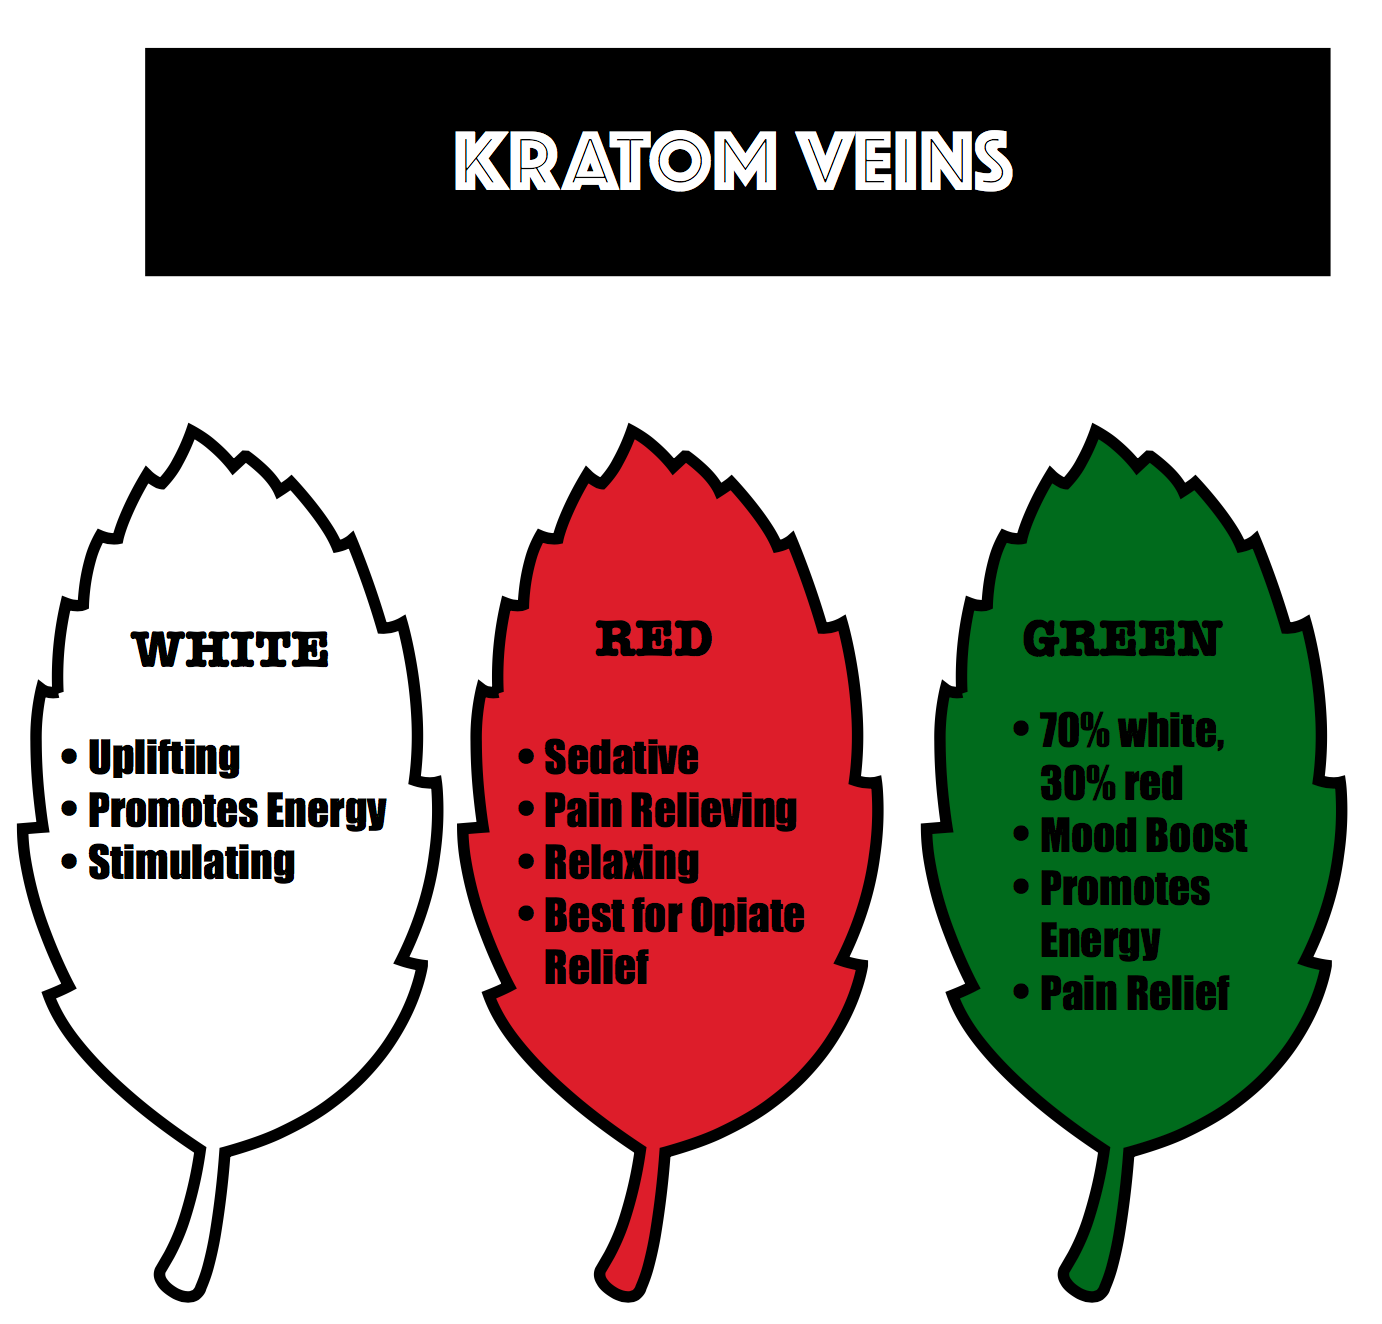 kratom, green, red, white, vein, veins, powder, capsules